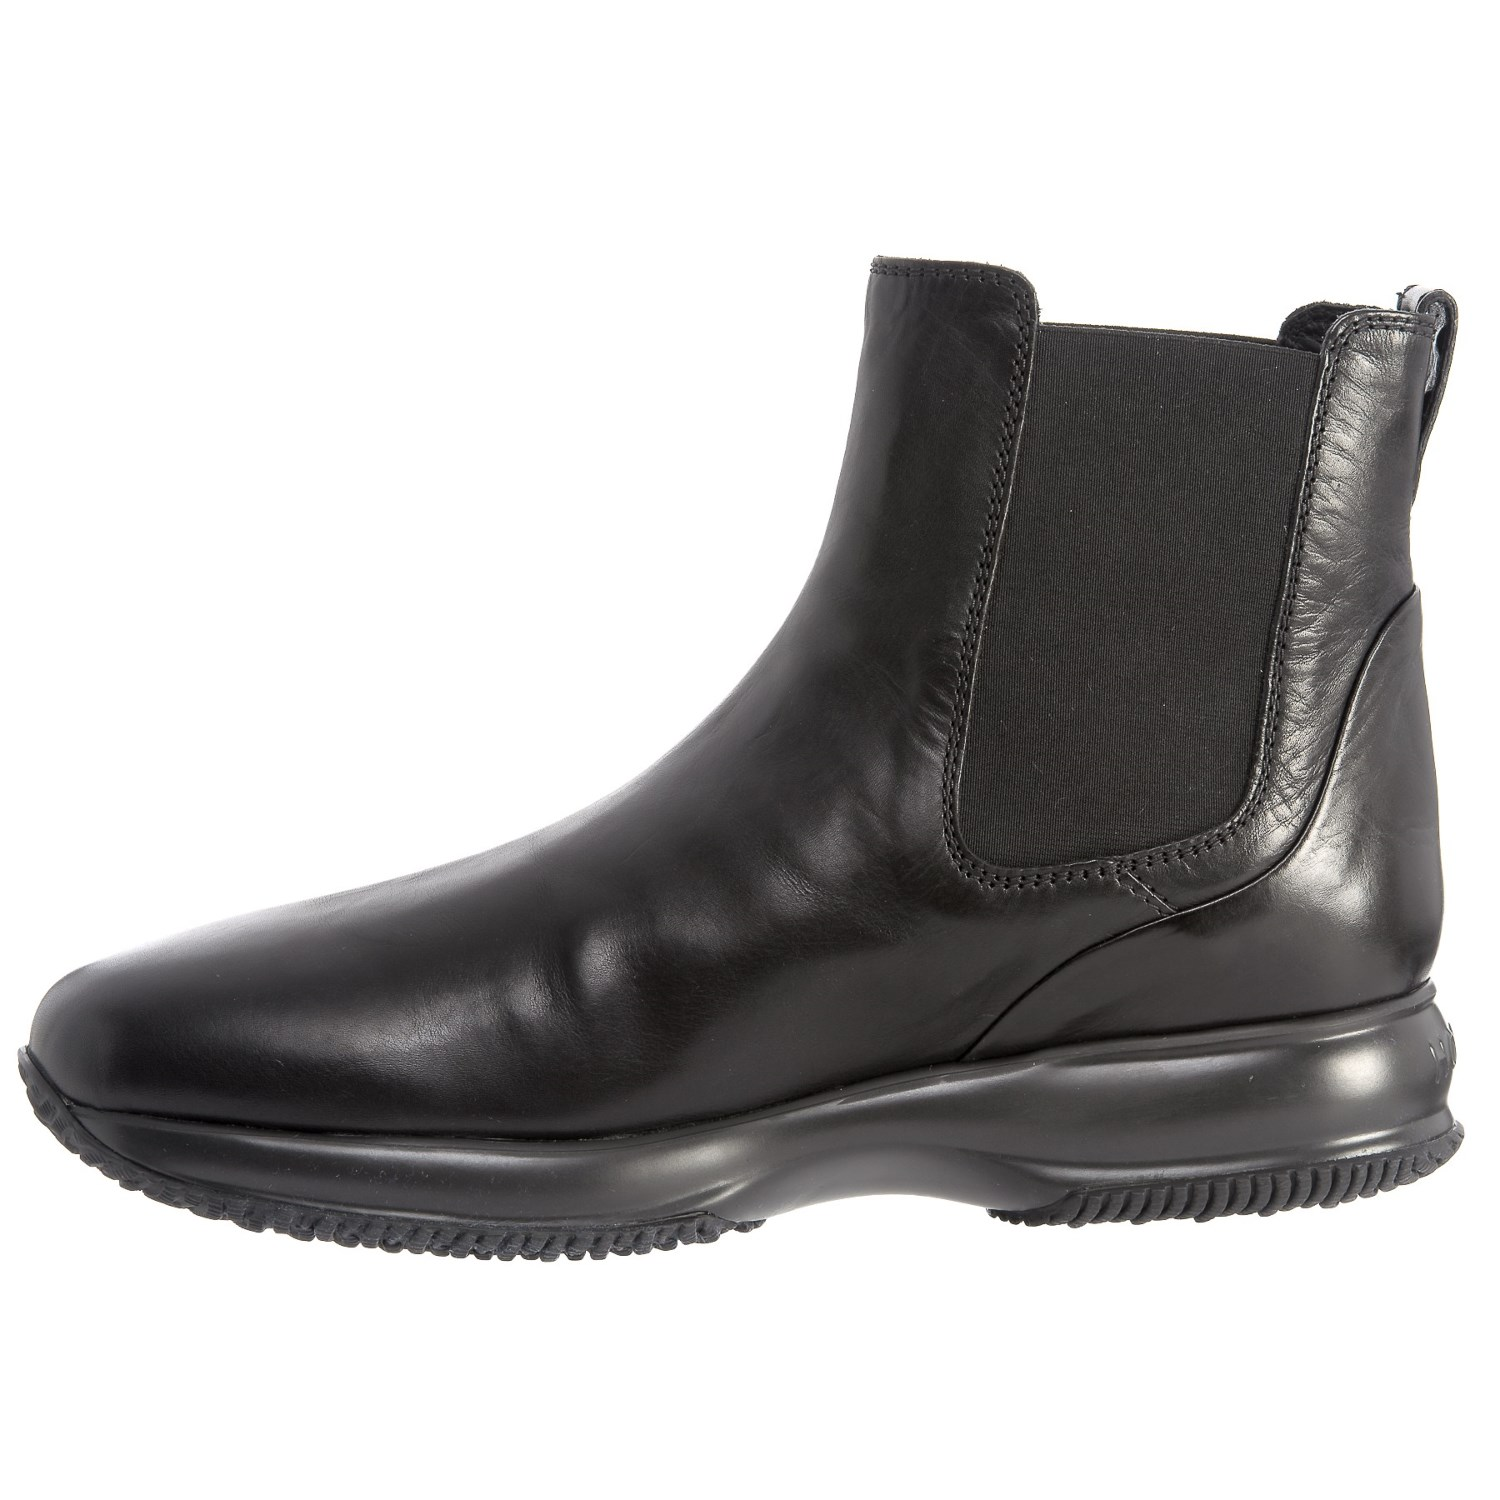 Hogan Shoes Hogan Made In Italy Tall Chelsea Boots Leather For Men